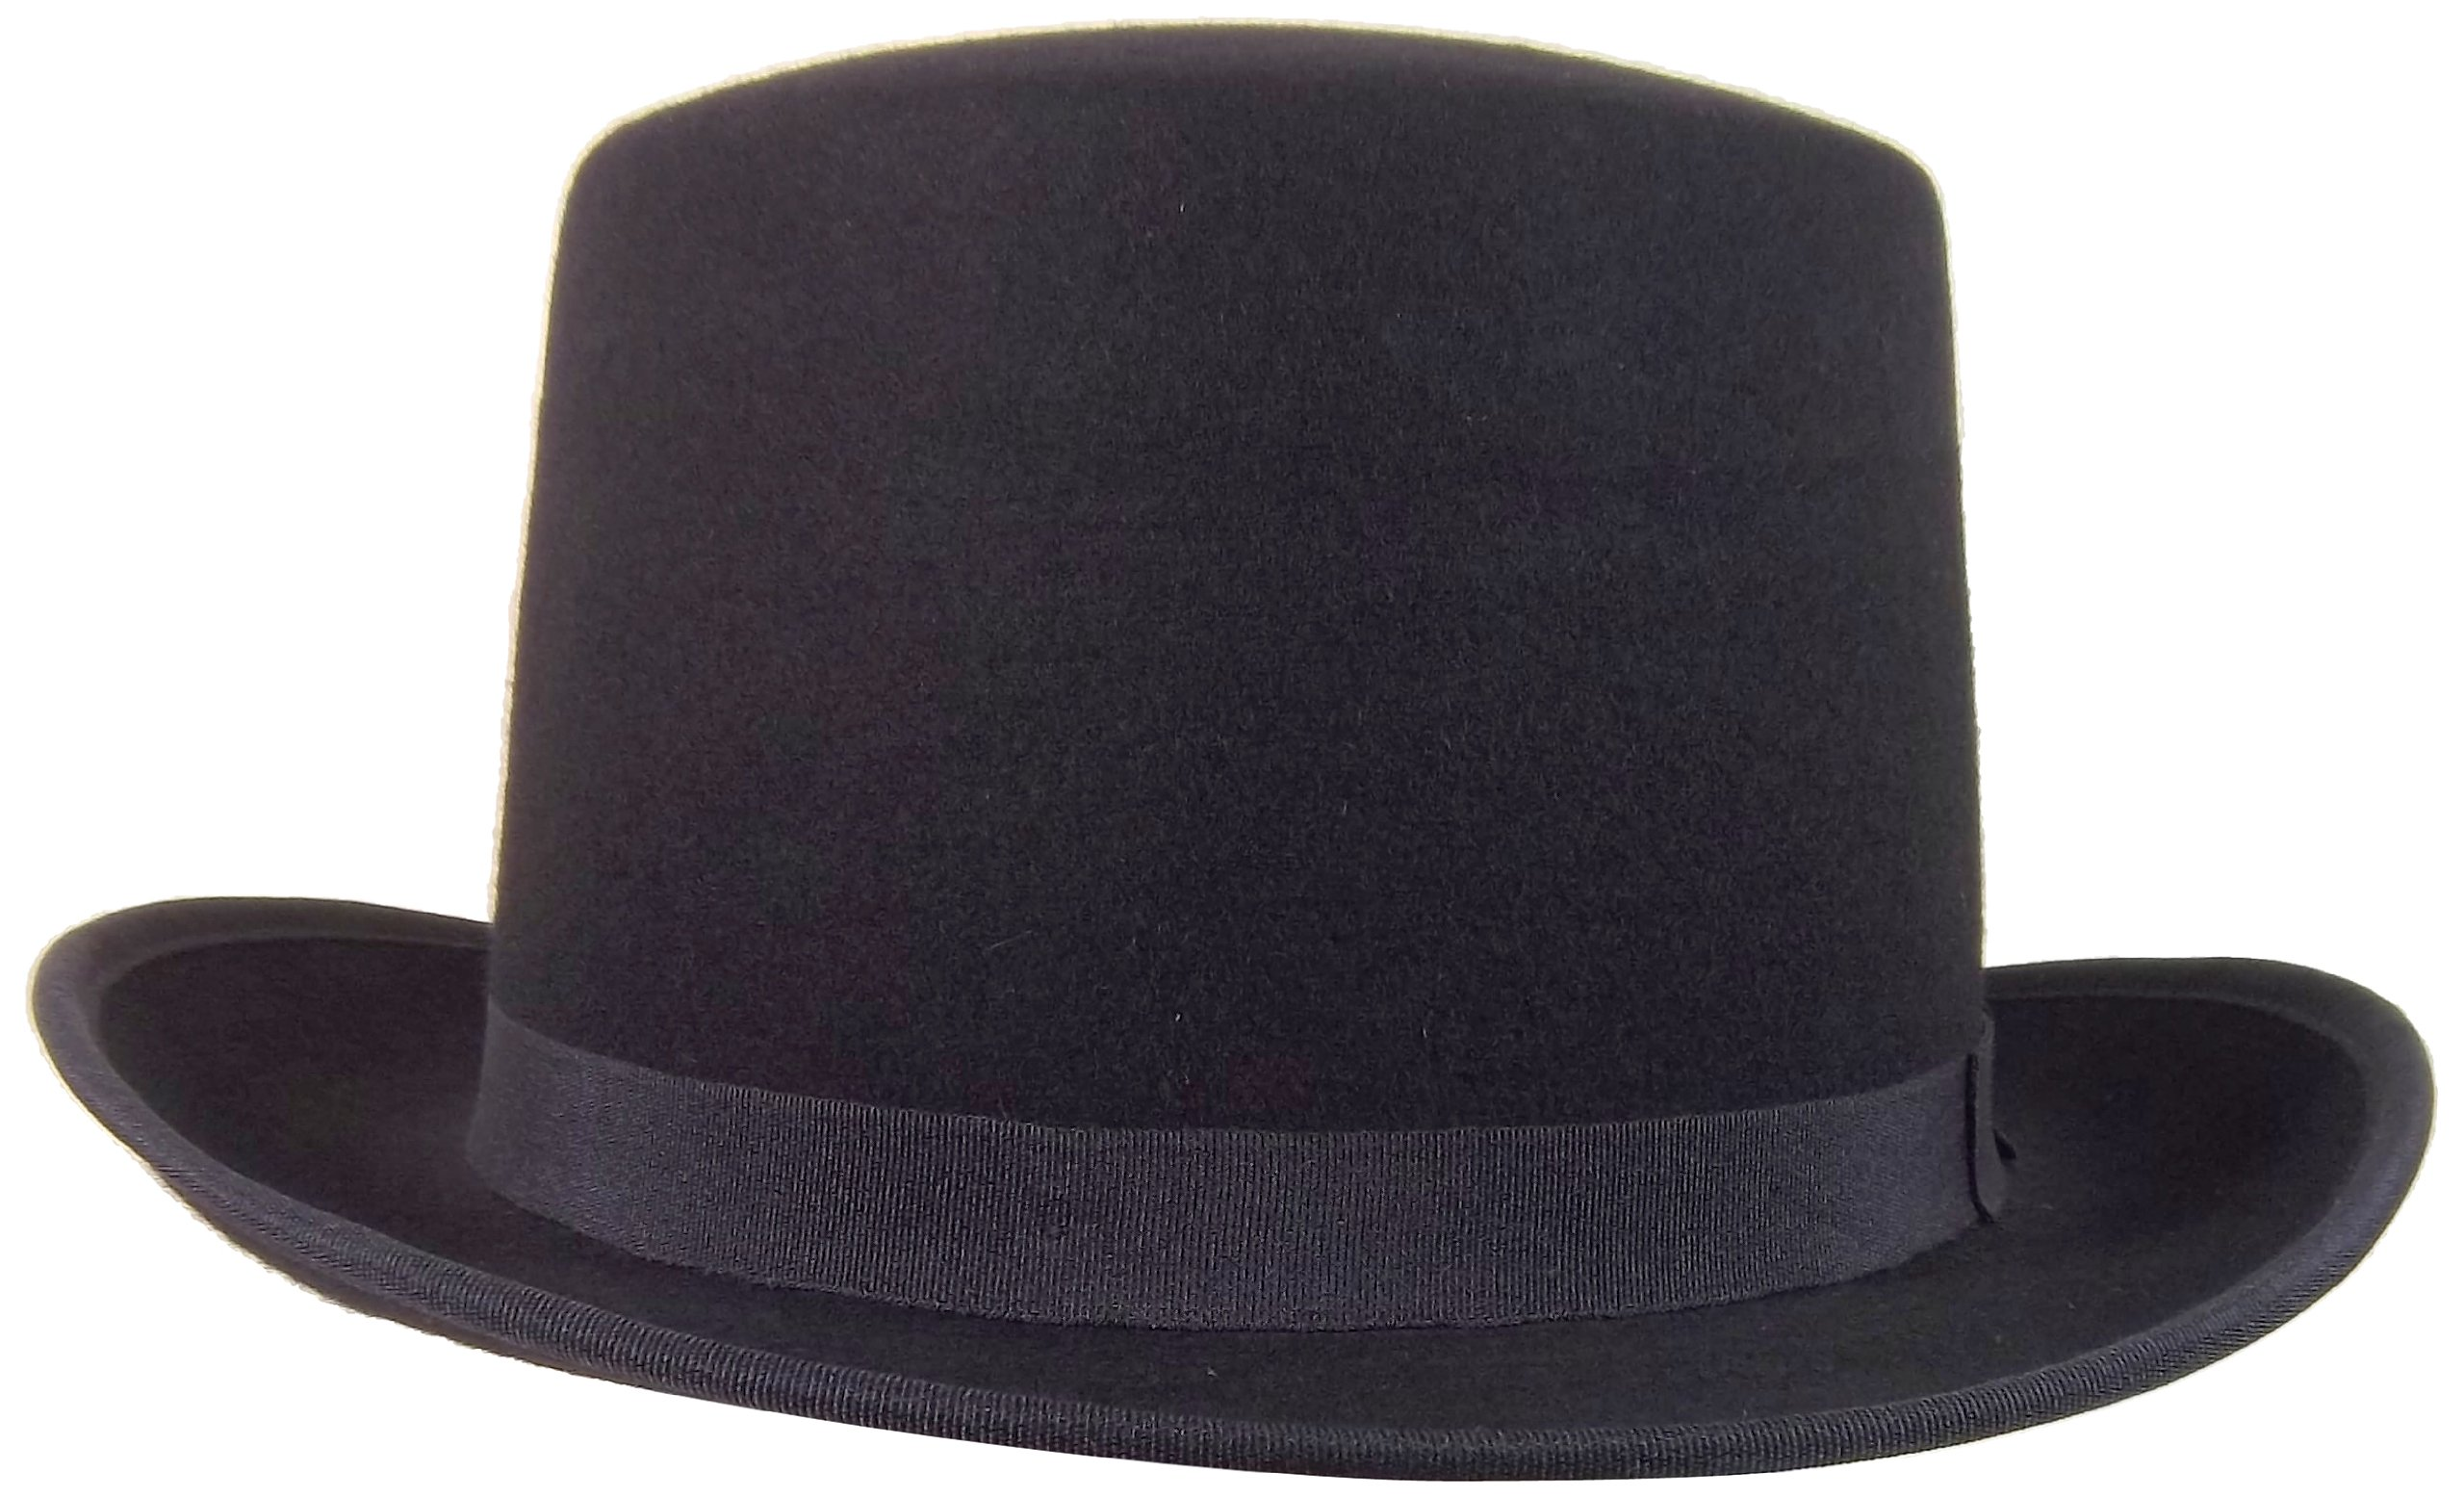 Jacobson Hat Company Wool Felt Top 5.75 Inch Tall, Black, Large/X-Large